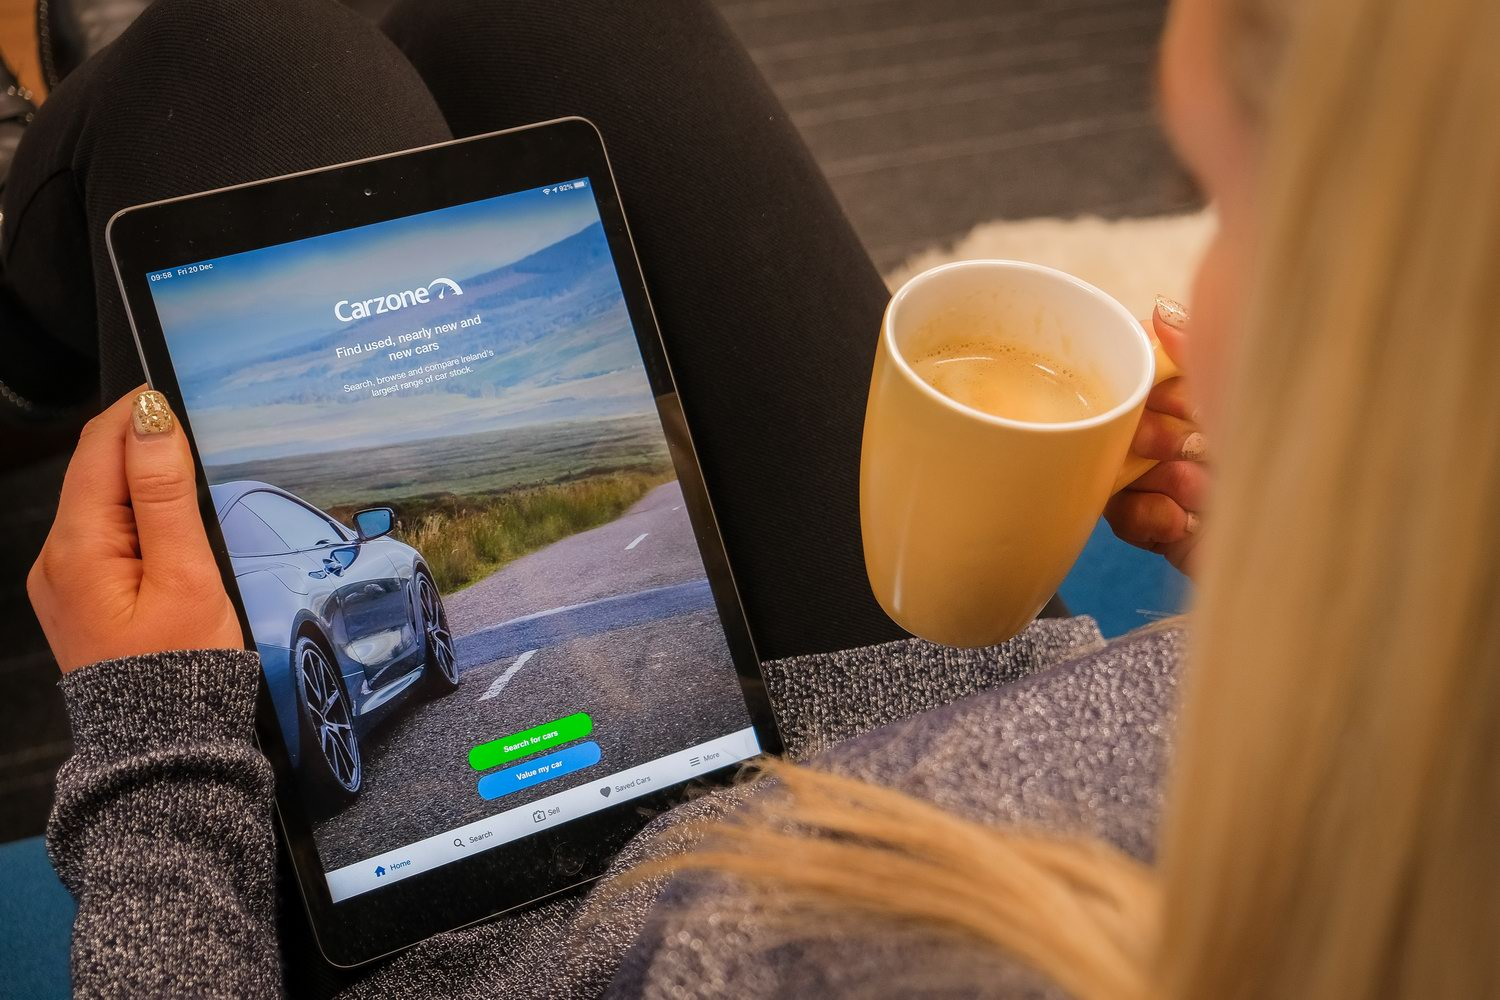 Car News | Carzone claims buyers still want cars | CompleteCar.ie